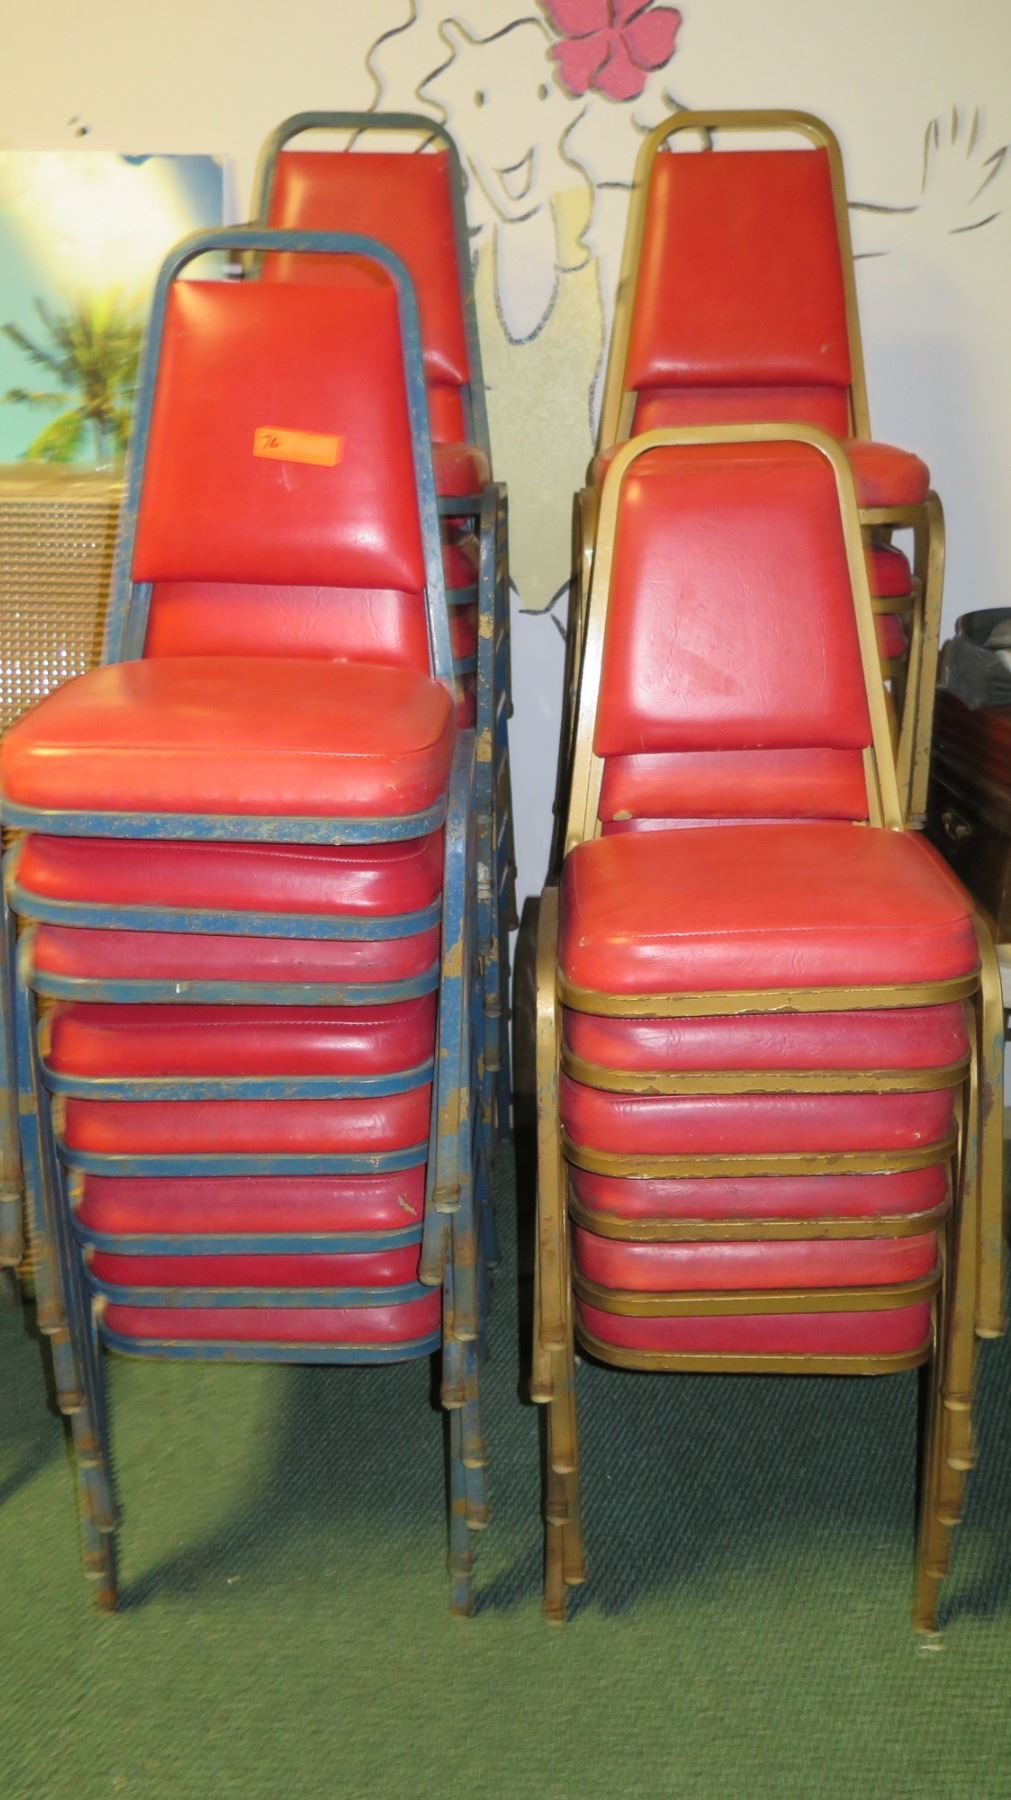 Vinyl Upholstered Stackable Chairs Approx 18 Red Blue 16